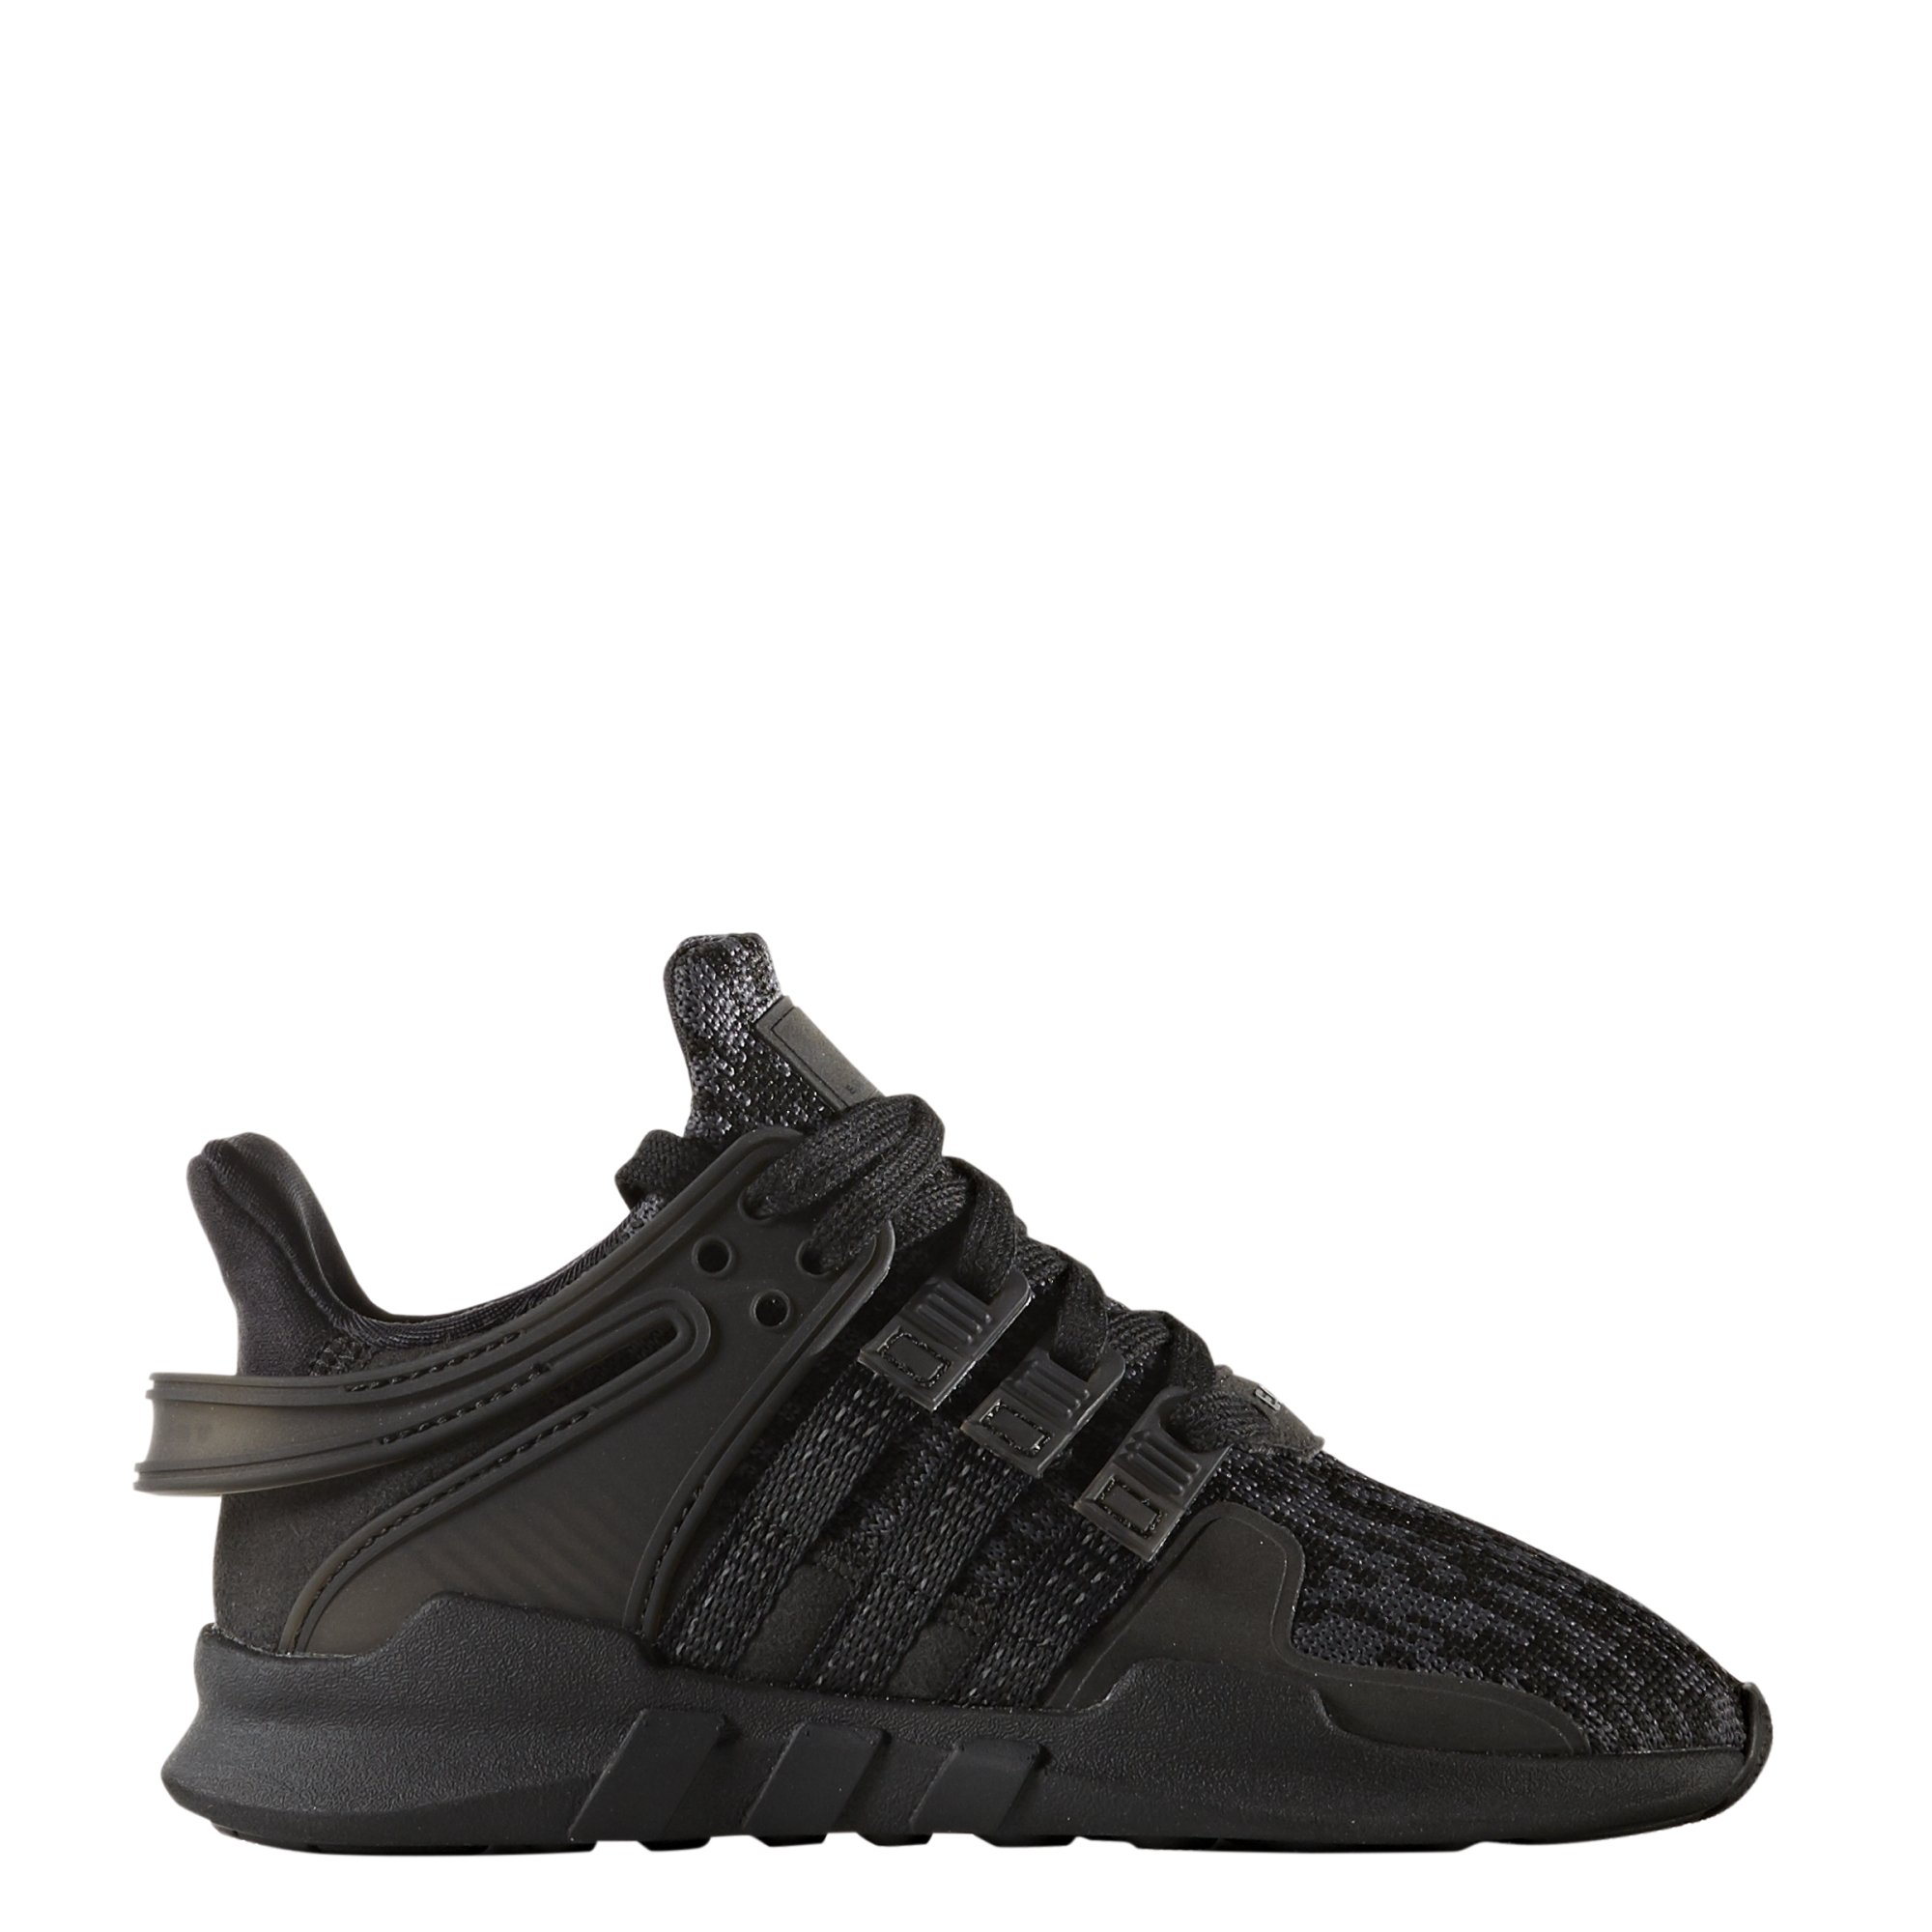 designer fashion e4fc3 51ea0 adidas Originals Boys' EQT Support ADV C Running Shoe, Black/Blk, 3 M US  Little Kid